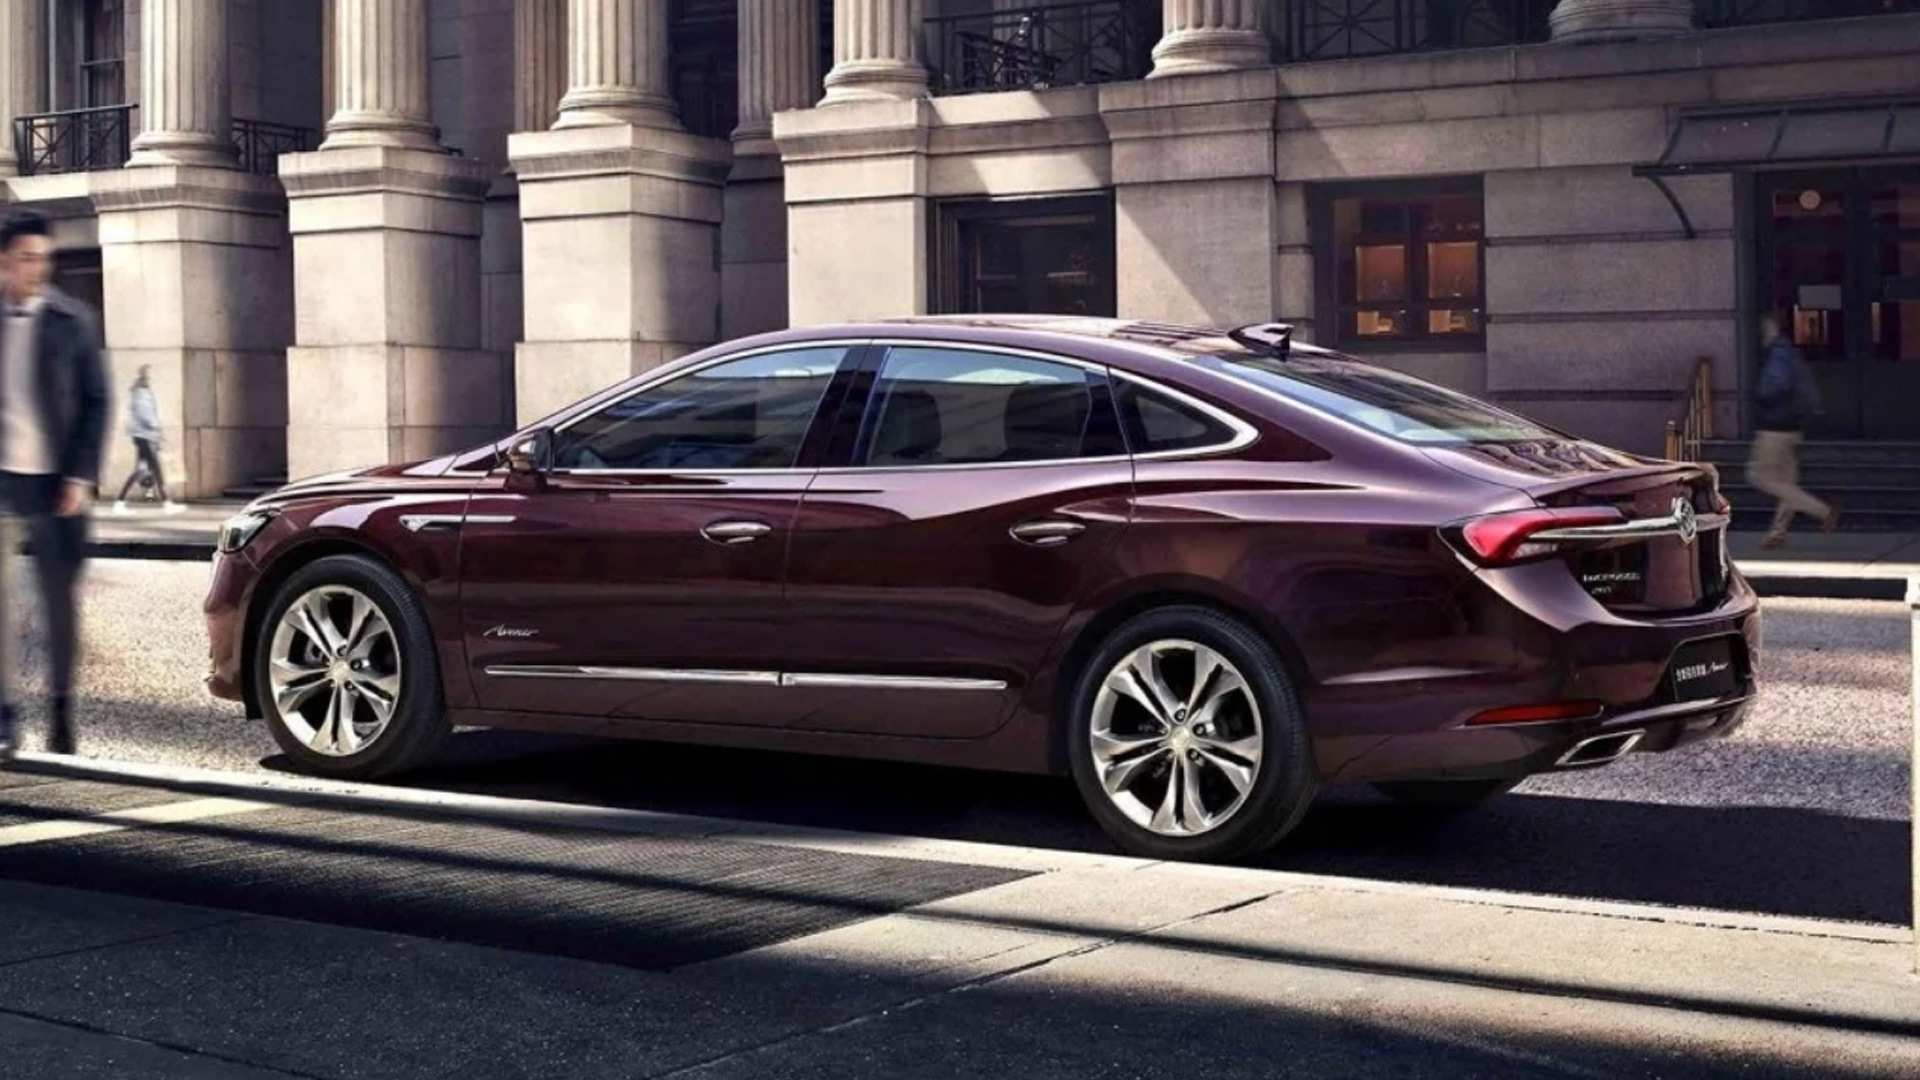 71 All New 2020 Buick LaCrosse Redesign